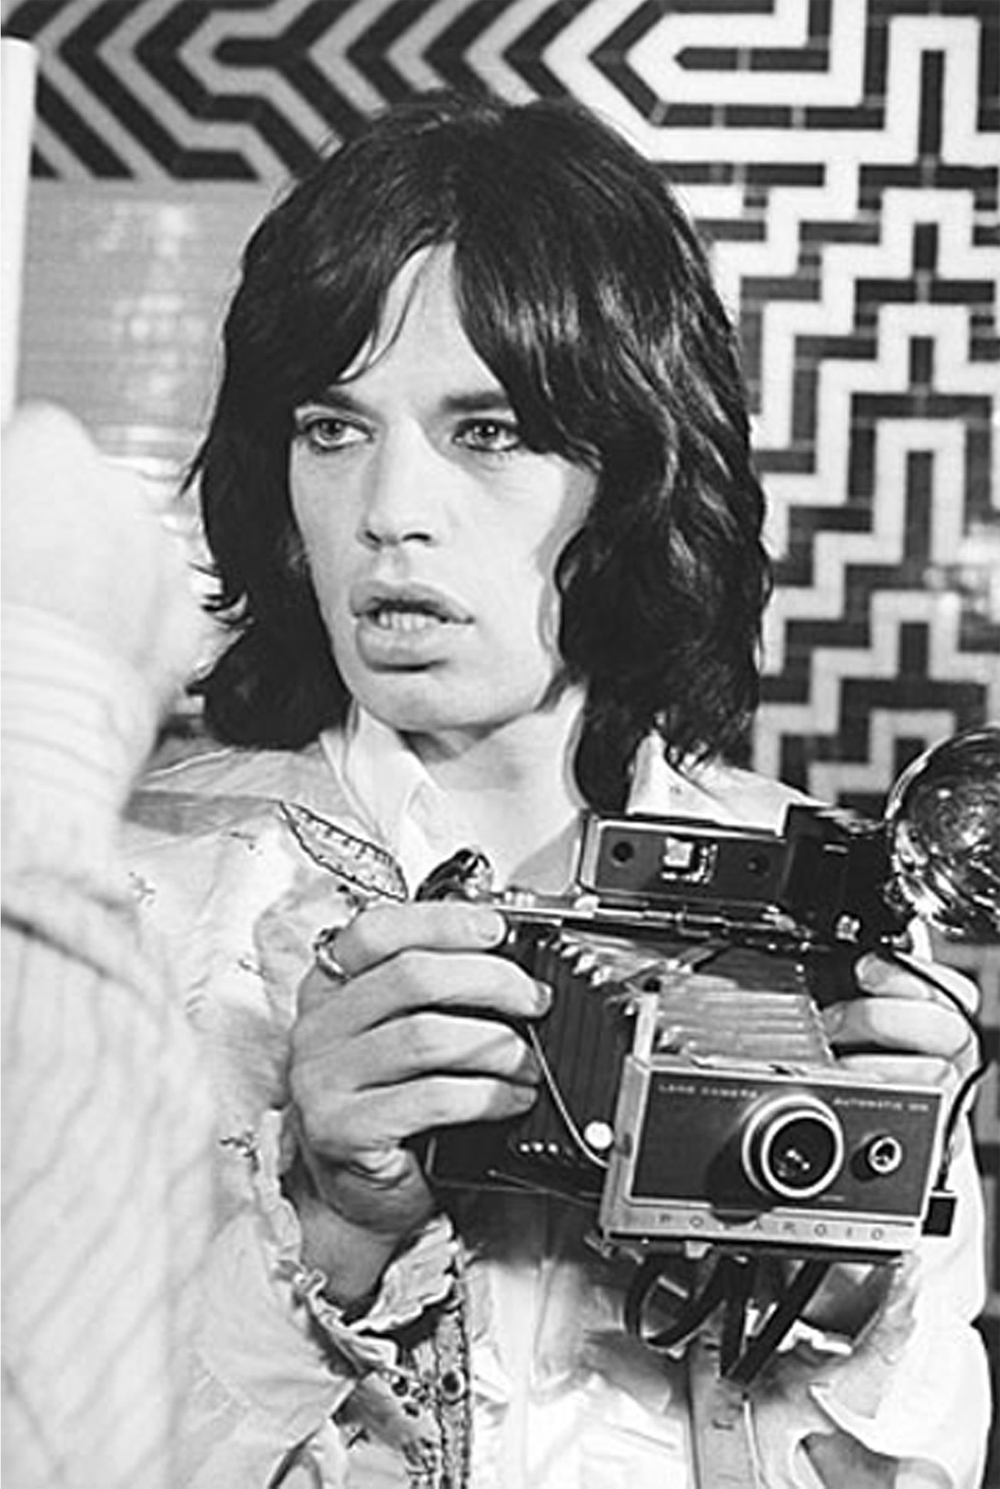 Mick Jagger On Set of Performance